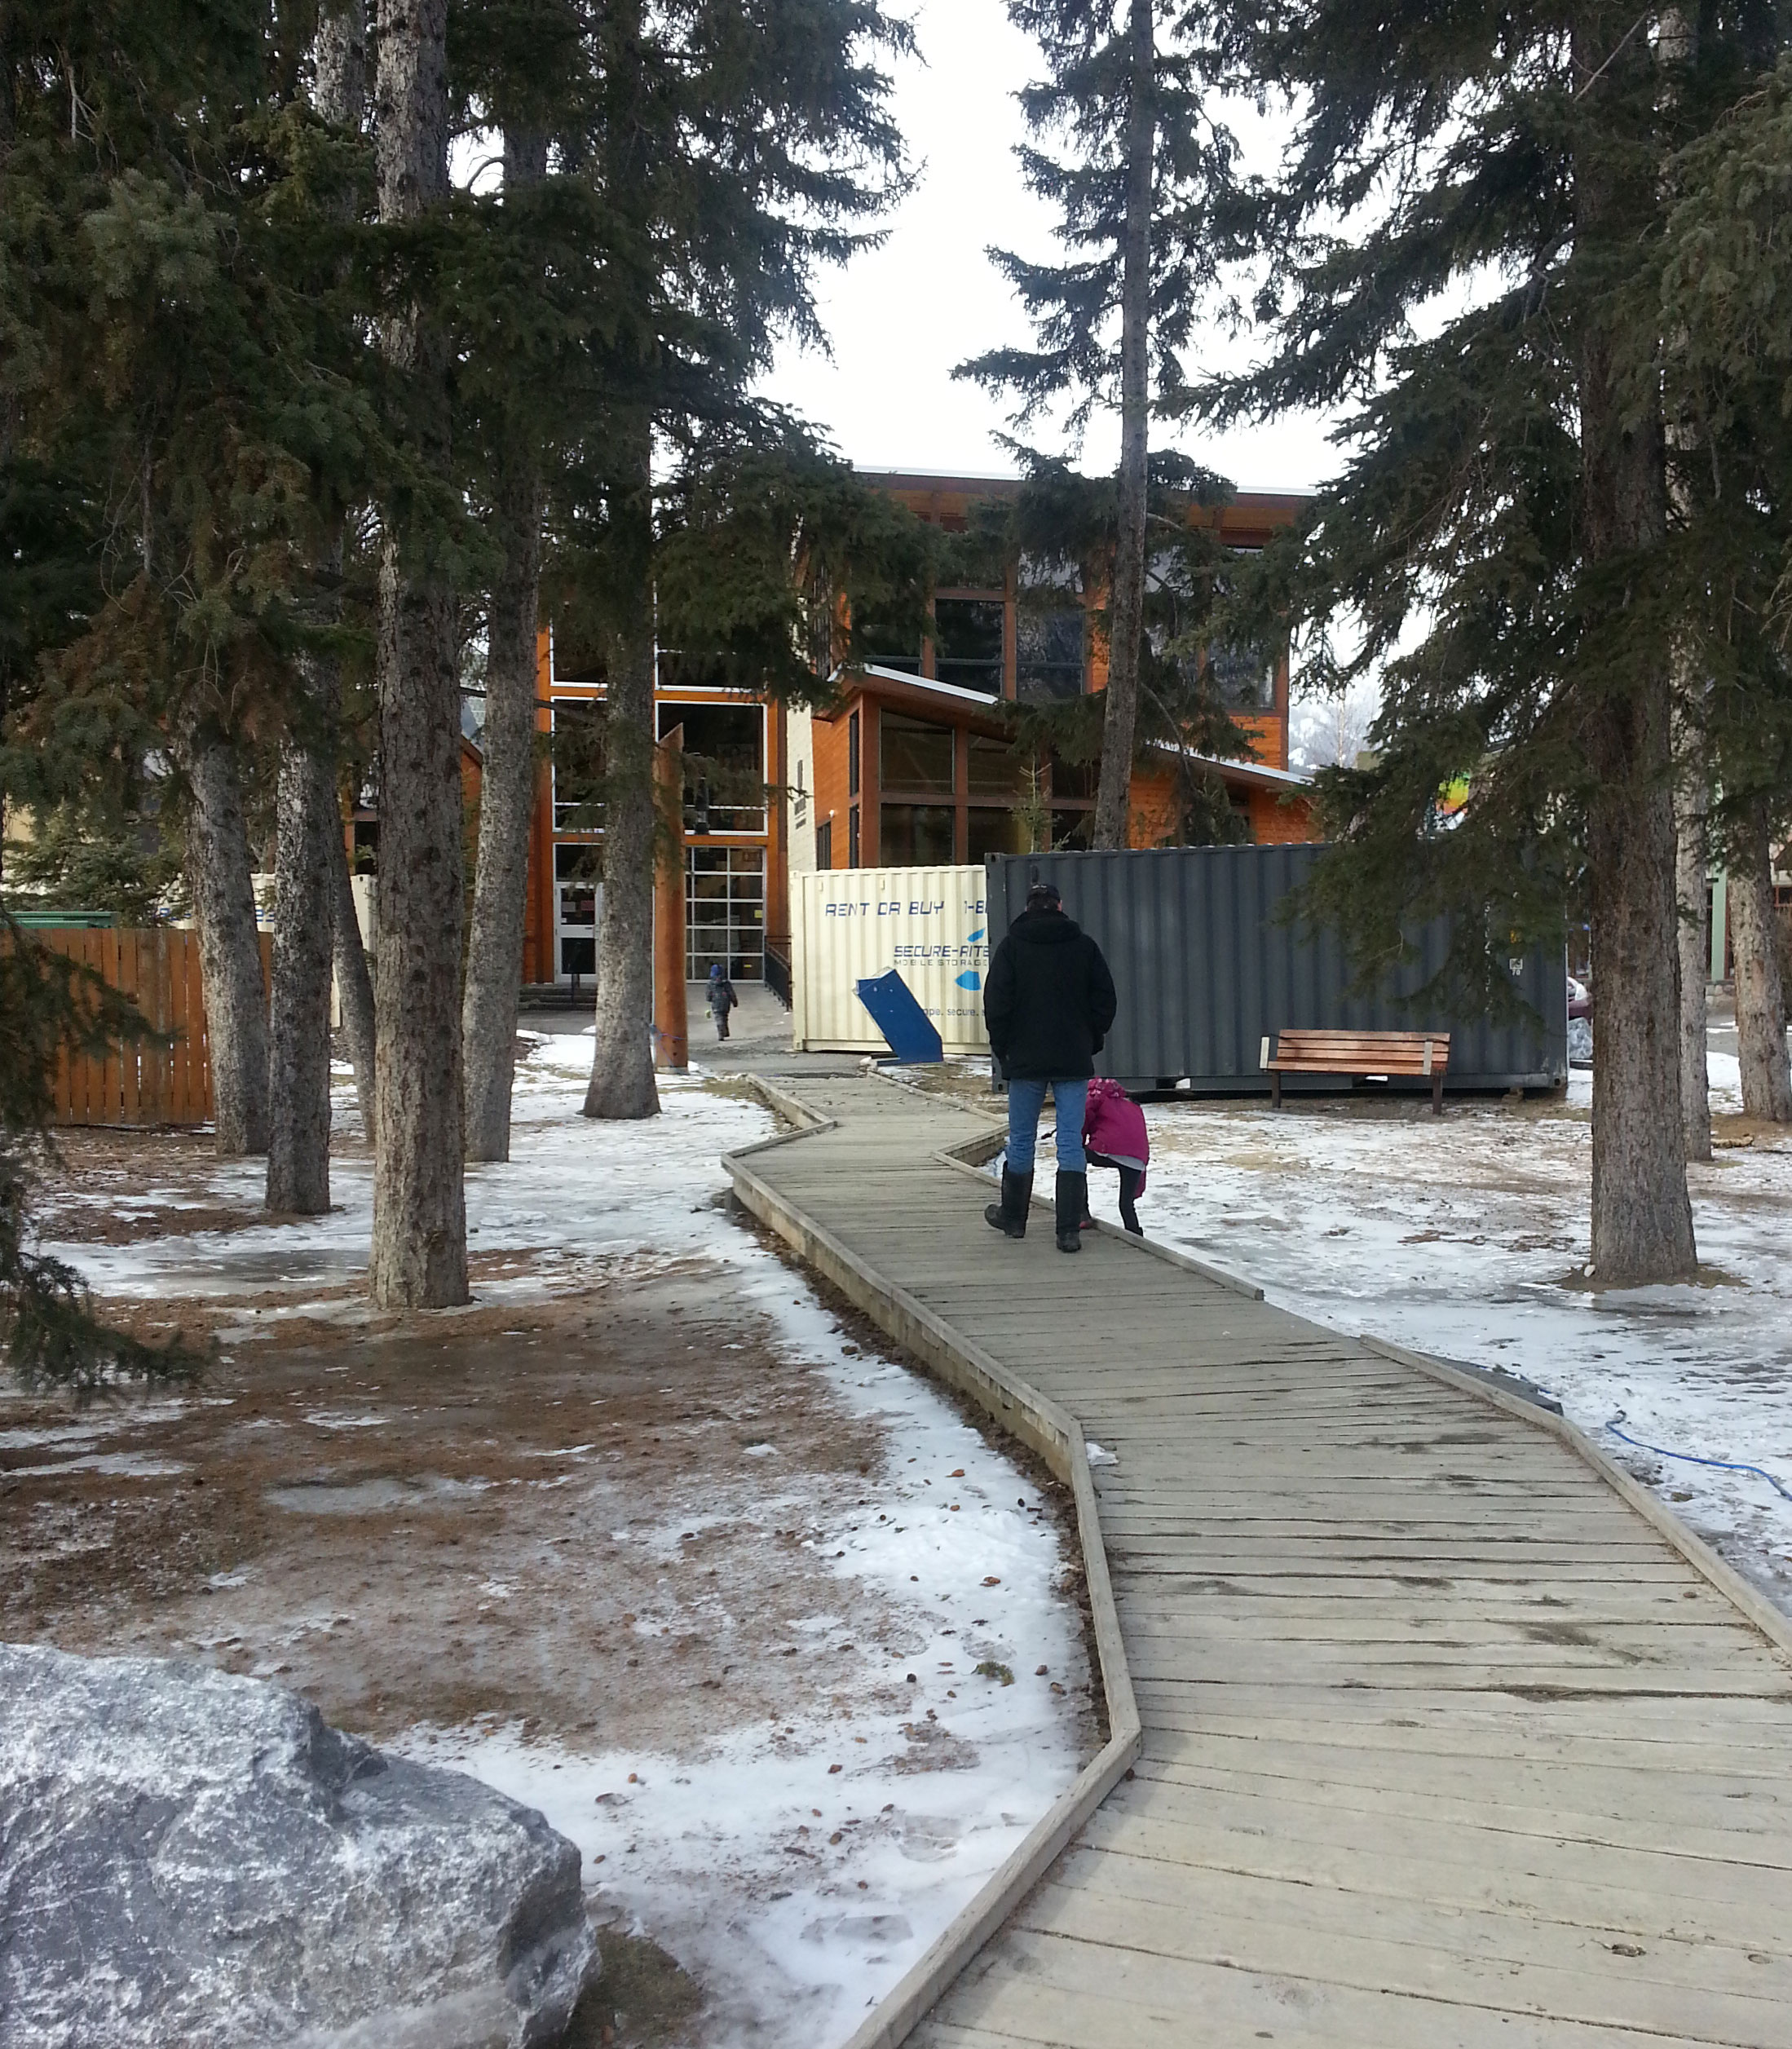 The Canmore Museum of Geosciences Centre